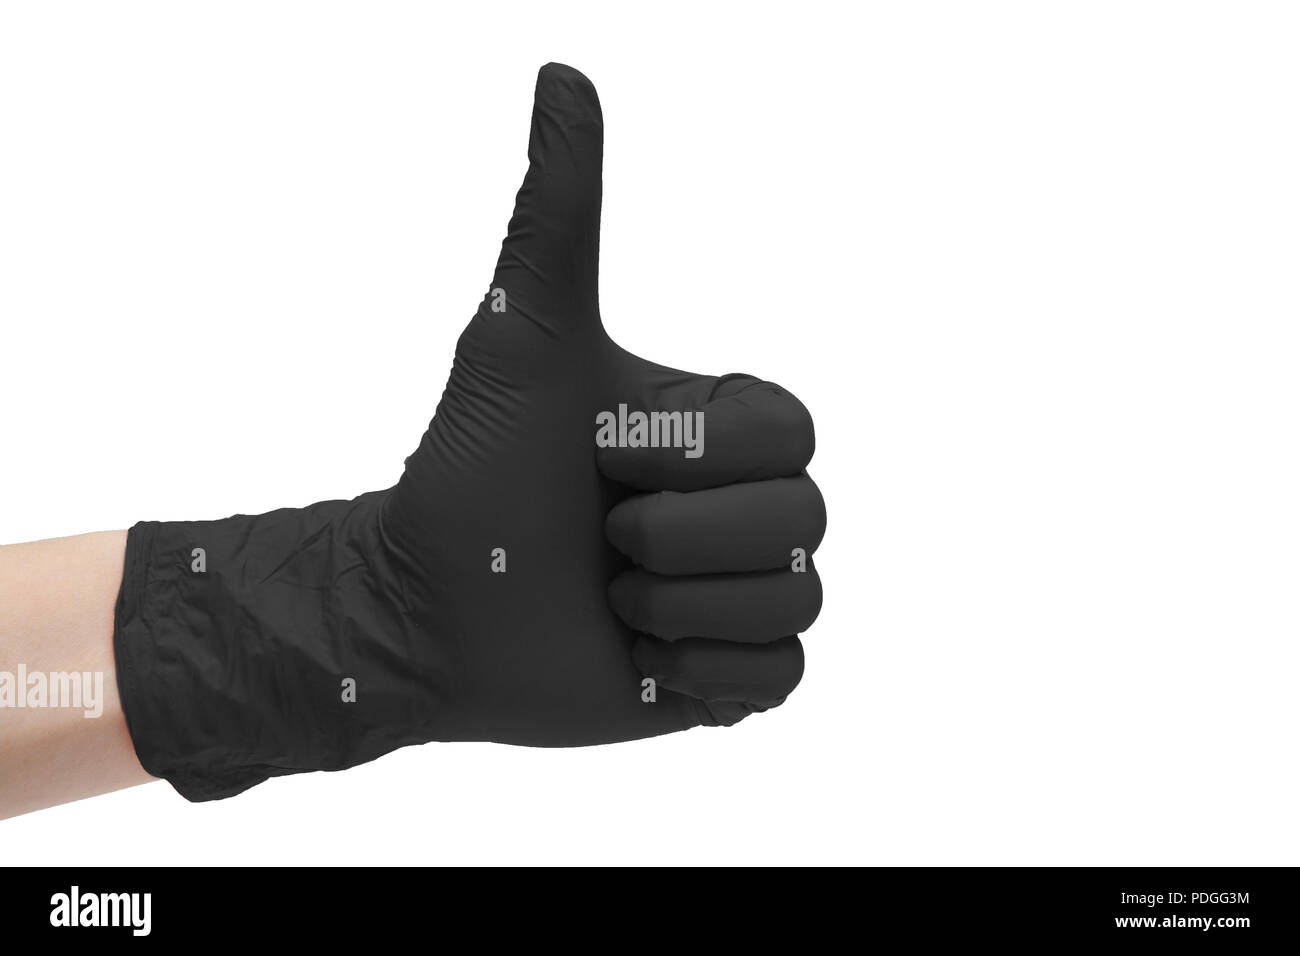 Like sign icon made of black medical gloves. Hand finger up symbol. Thumbs up gesture. Isolated on white background - Stock Image